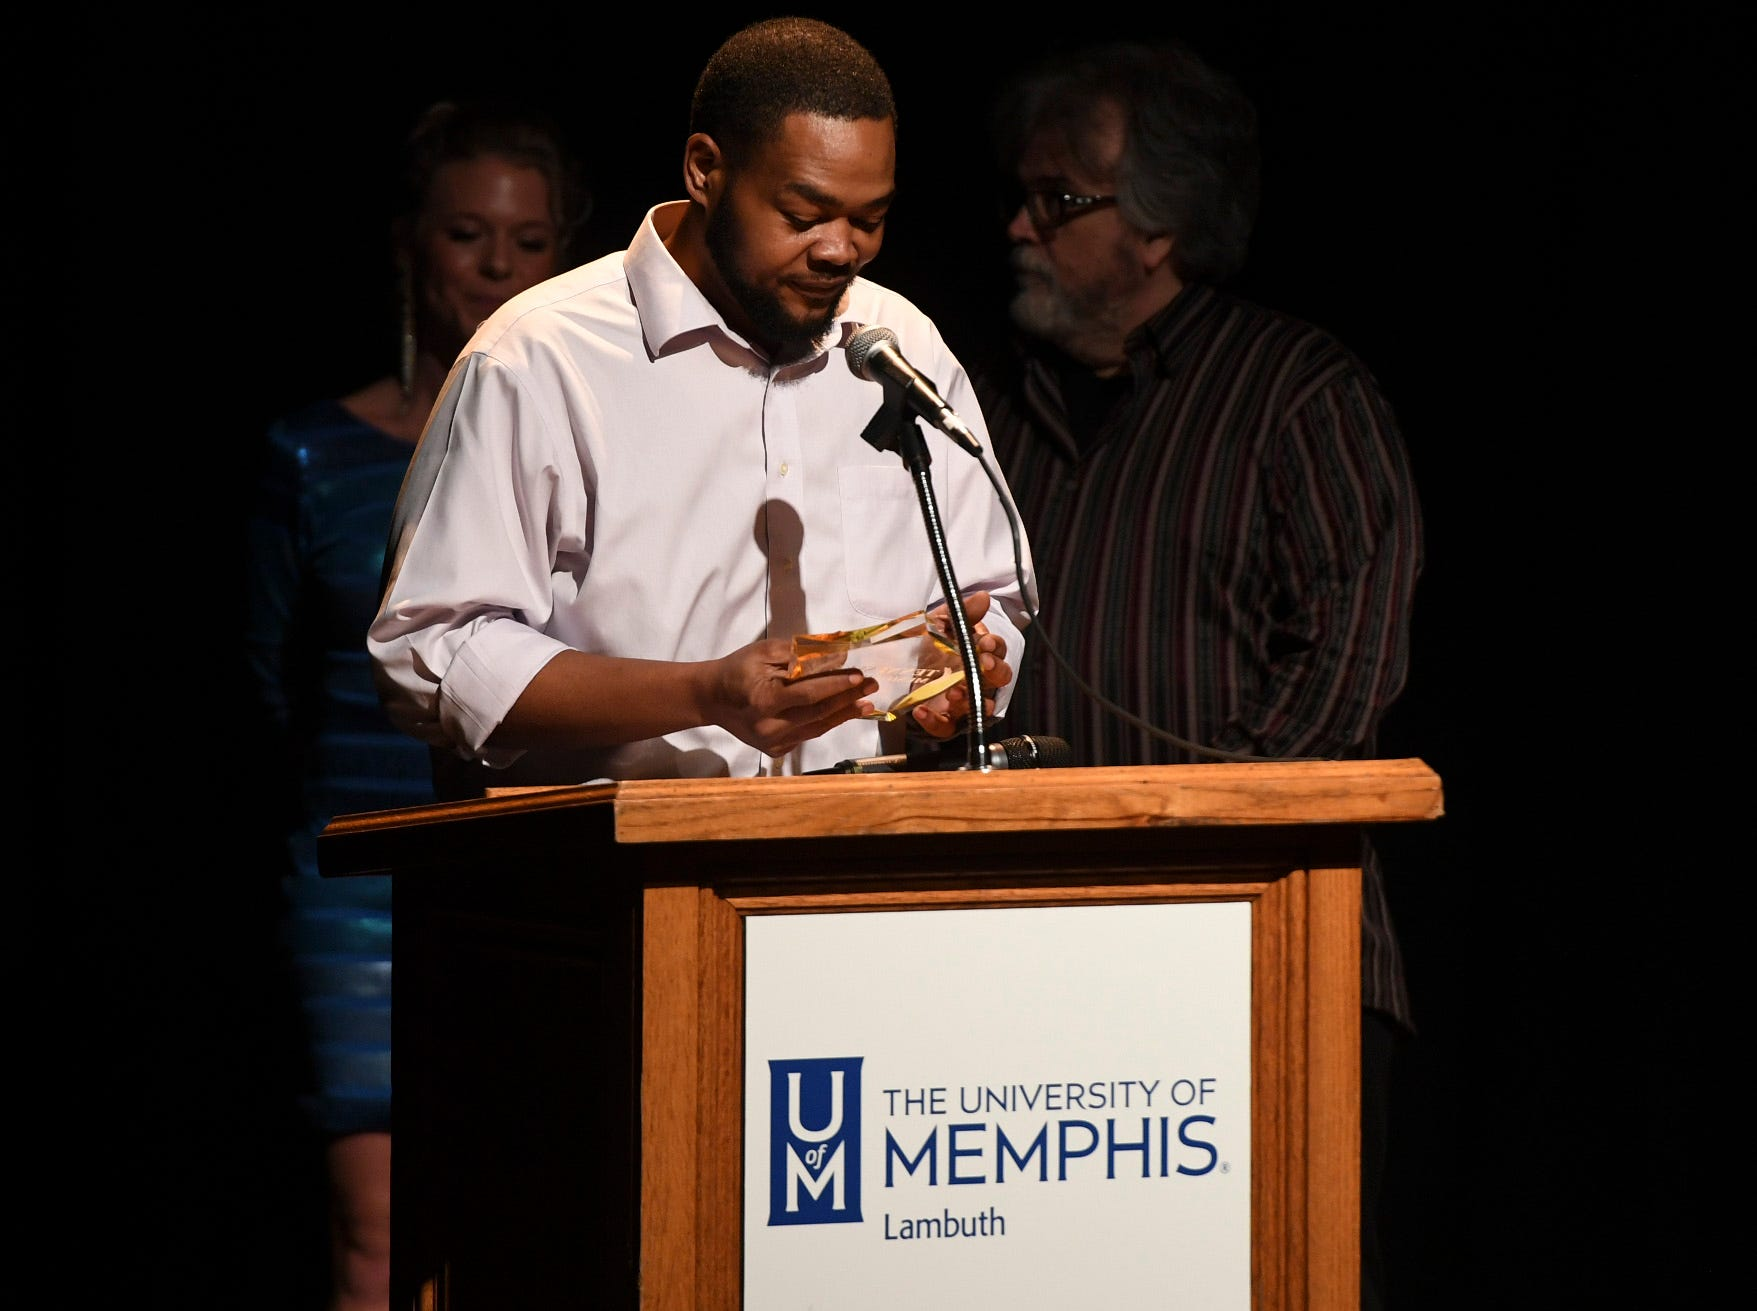 Kris Dickerson looks at his award during his acceptance speech for Drummer of the Year during the 2nd Annual Tennessee Music Awards, Monday, October 8, at University of Memphis Lambuth.